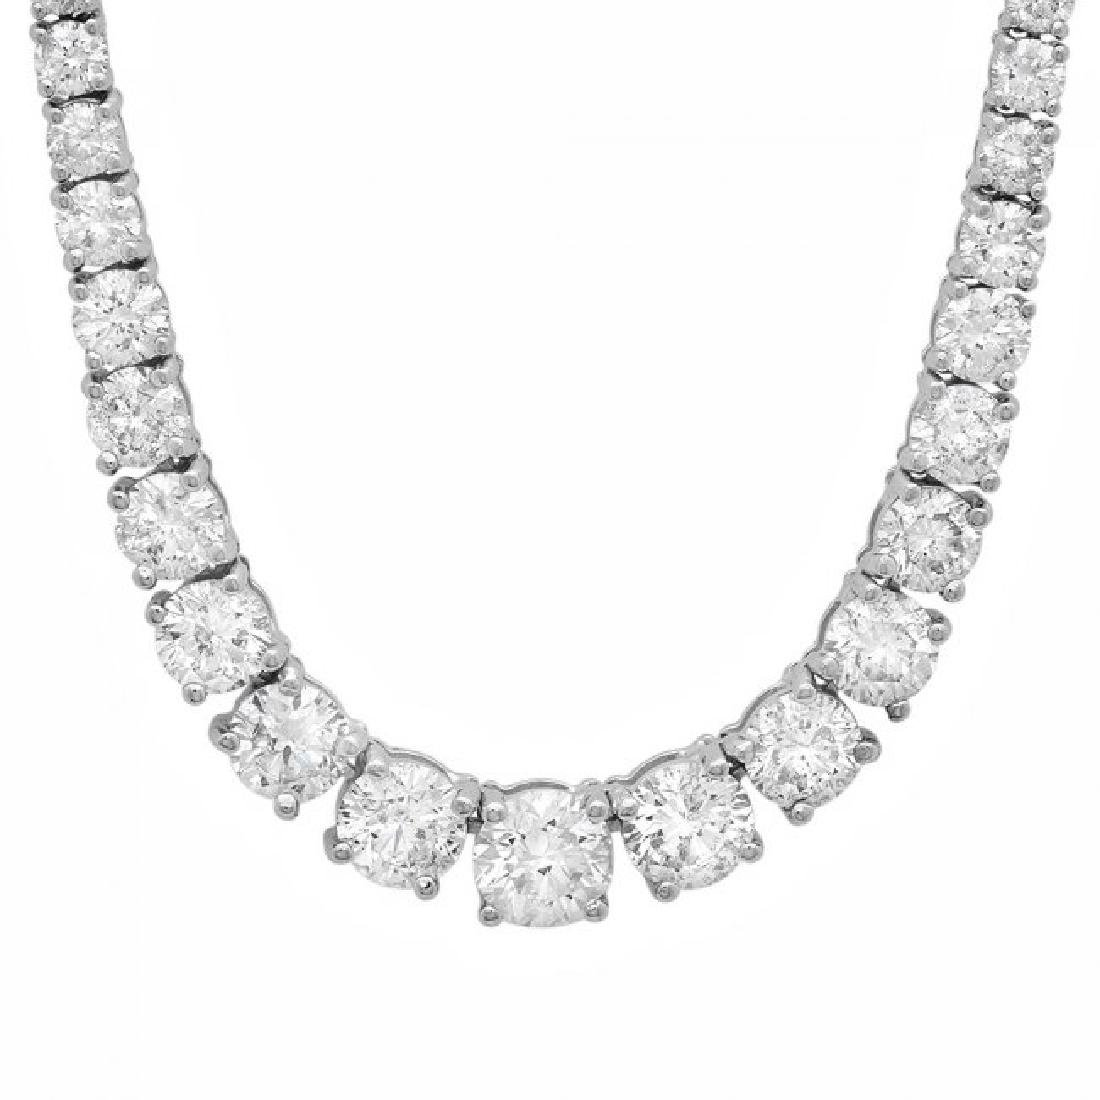 18k White Gold 11.50ct Diamond Necklace - 6